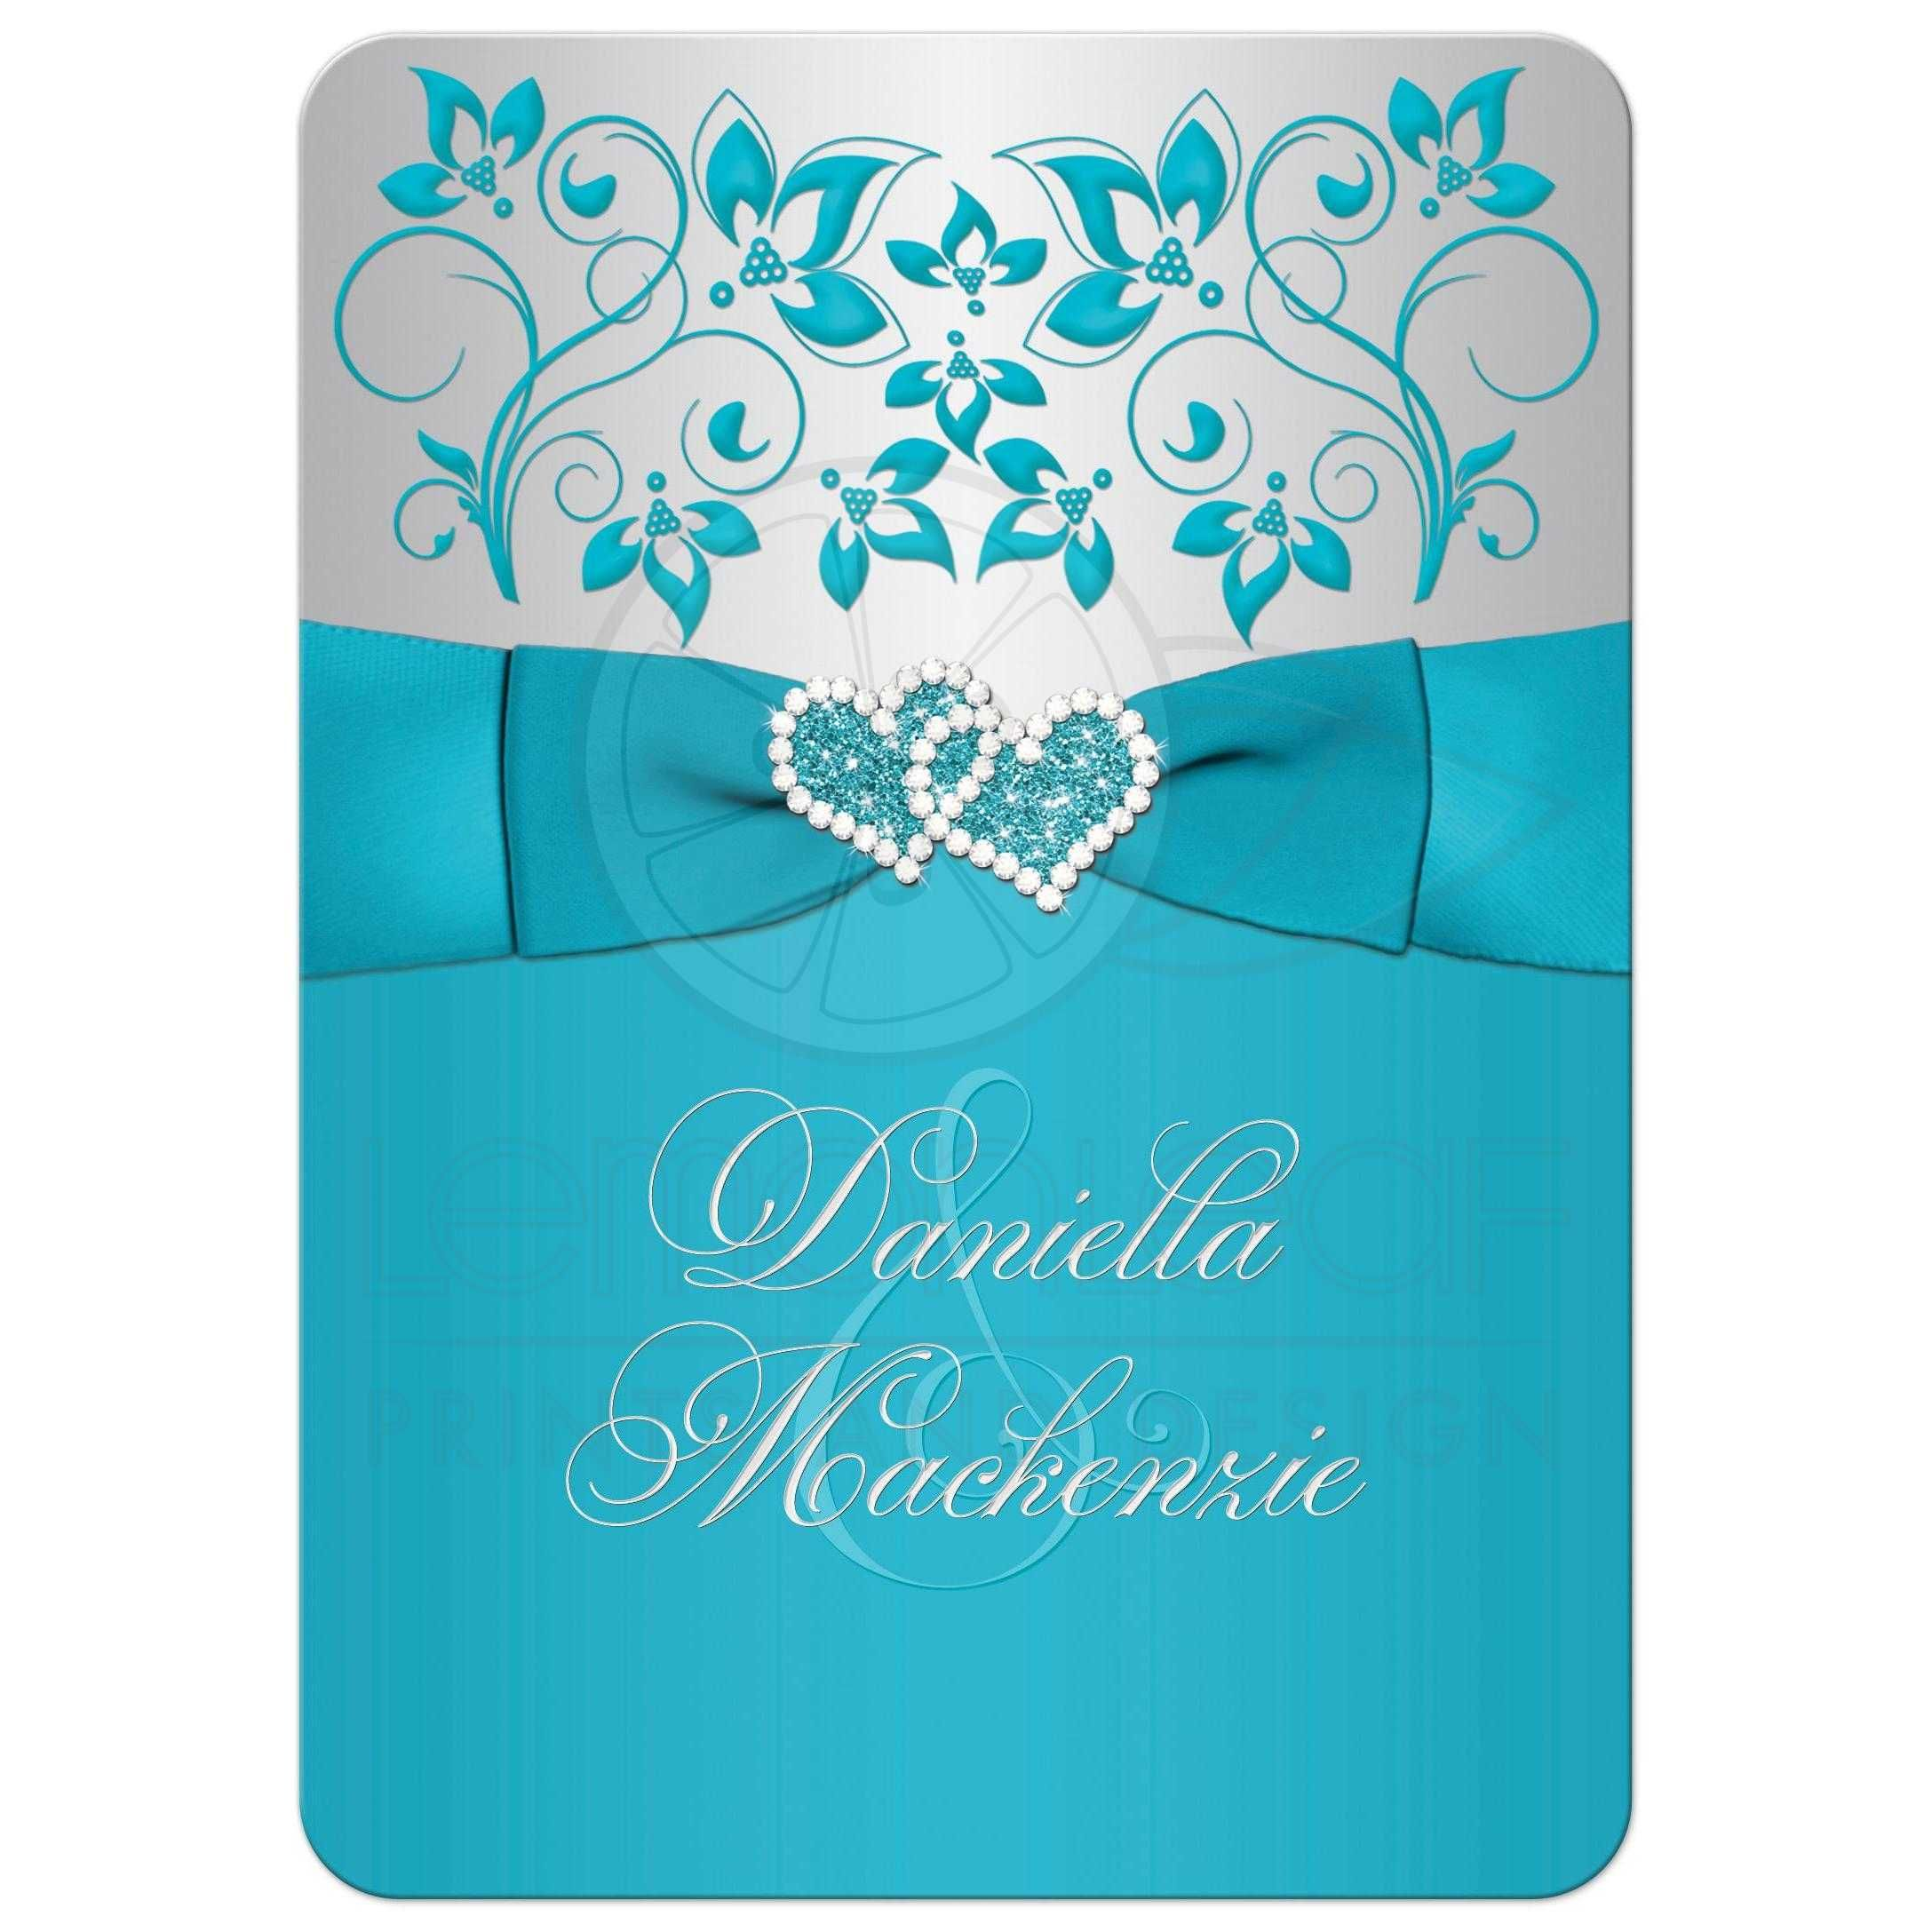 Wedding Invitation Turquoise Silver Floral Printed Ribbon Joined Jeweled Hearts Christian Wedding Invitations Teal Wedding Invitations Wedding Invitation Card Template